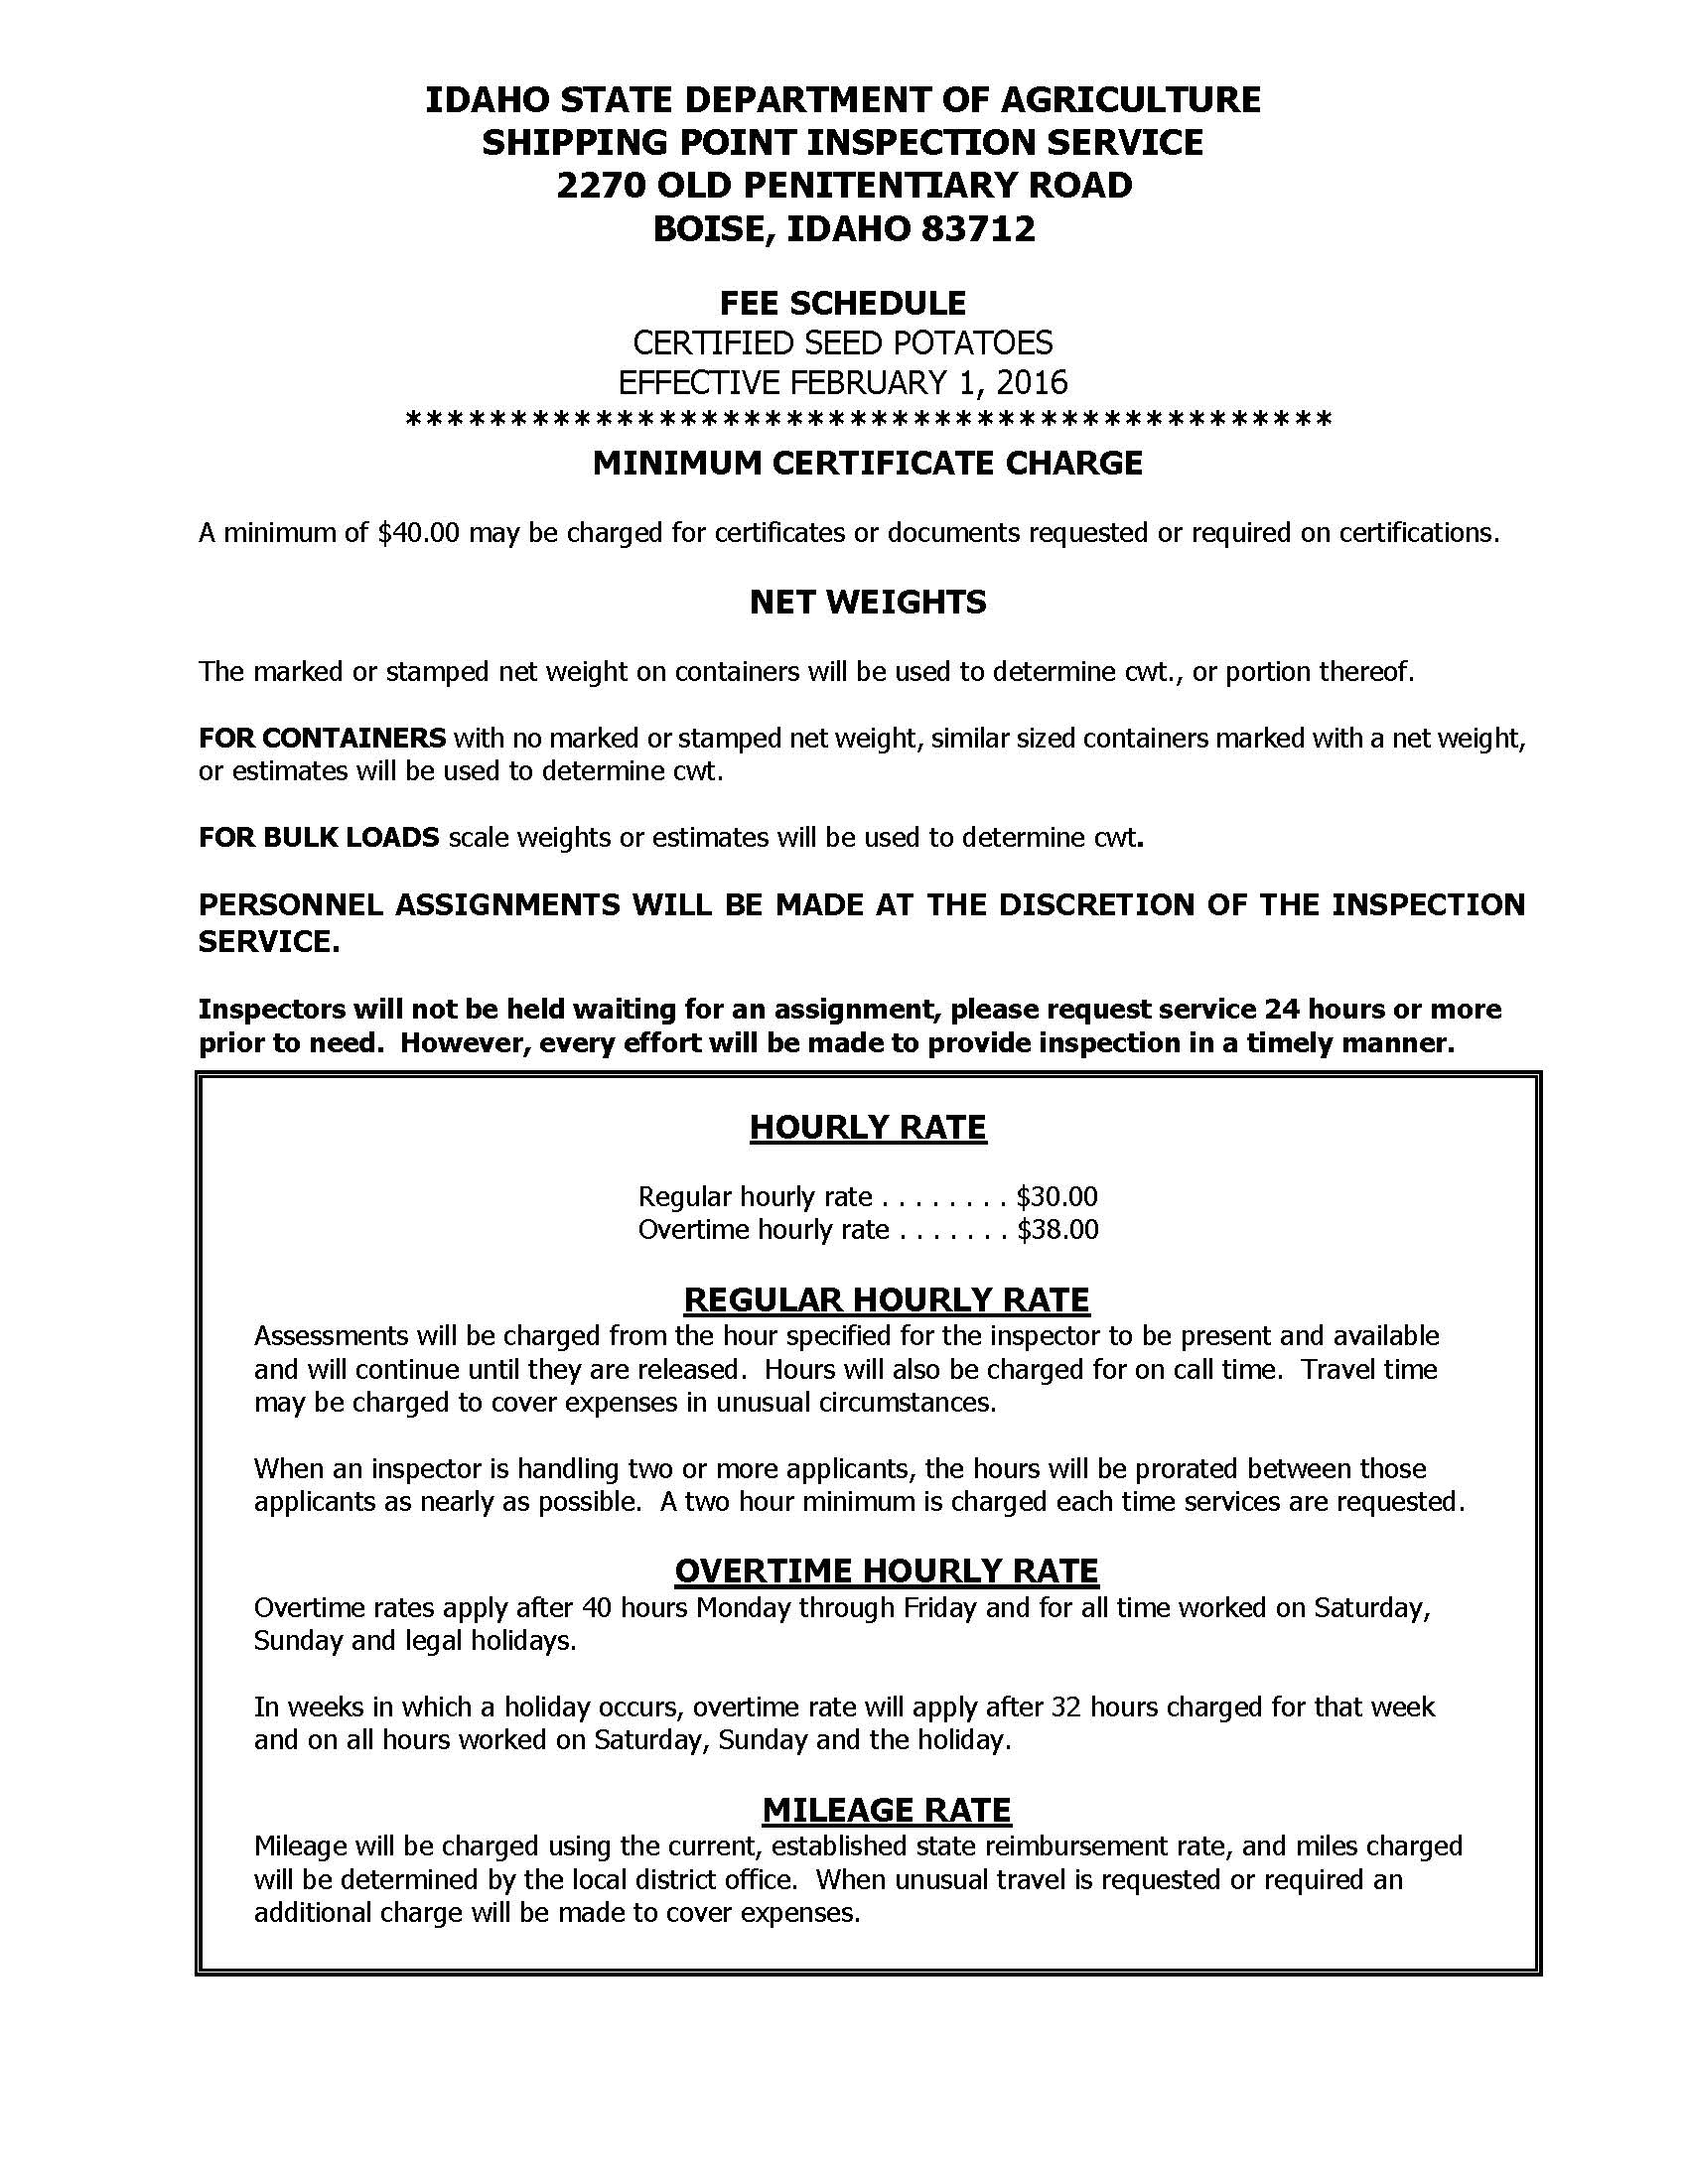 Printable PDF – Idaho State Department of Agriculture